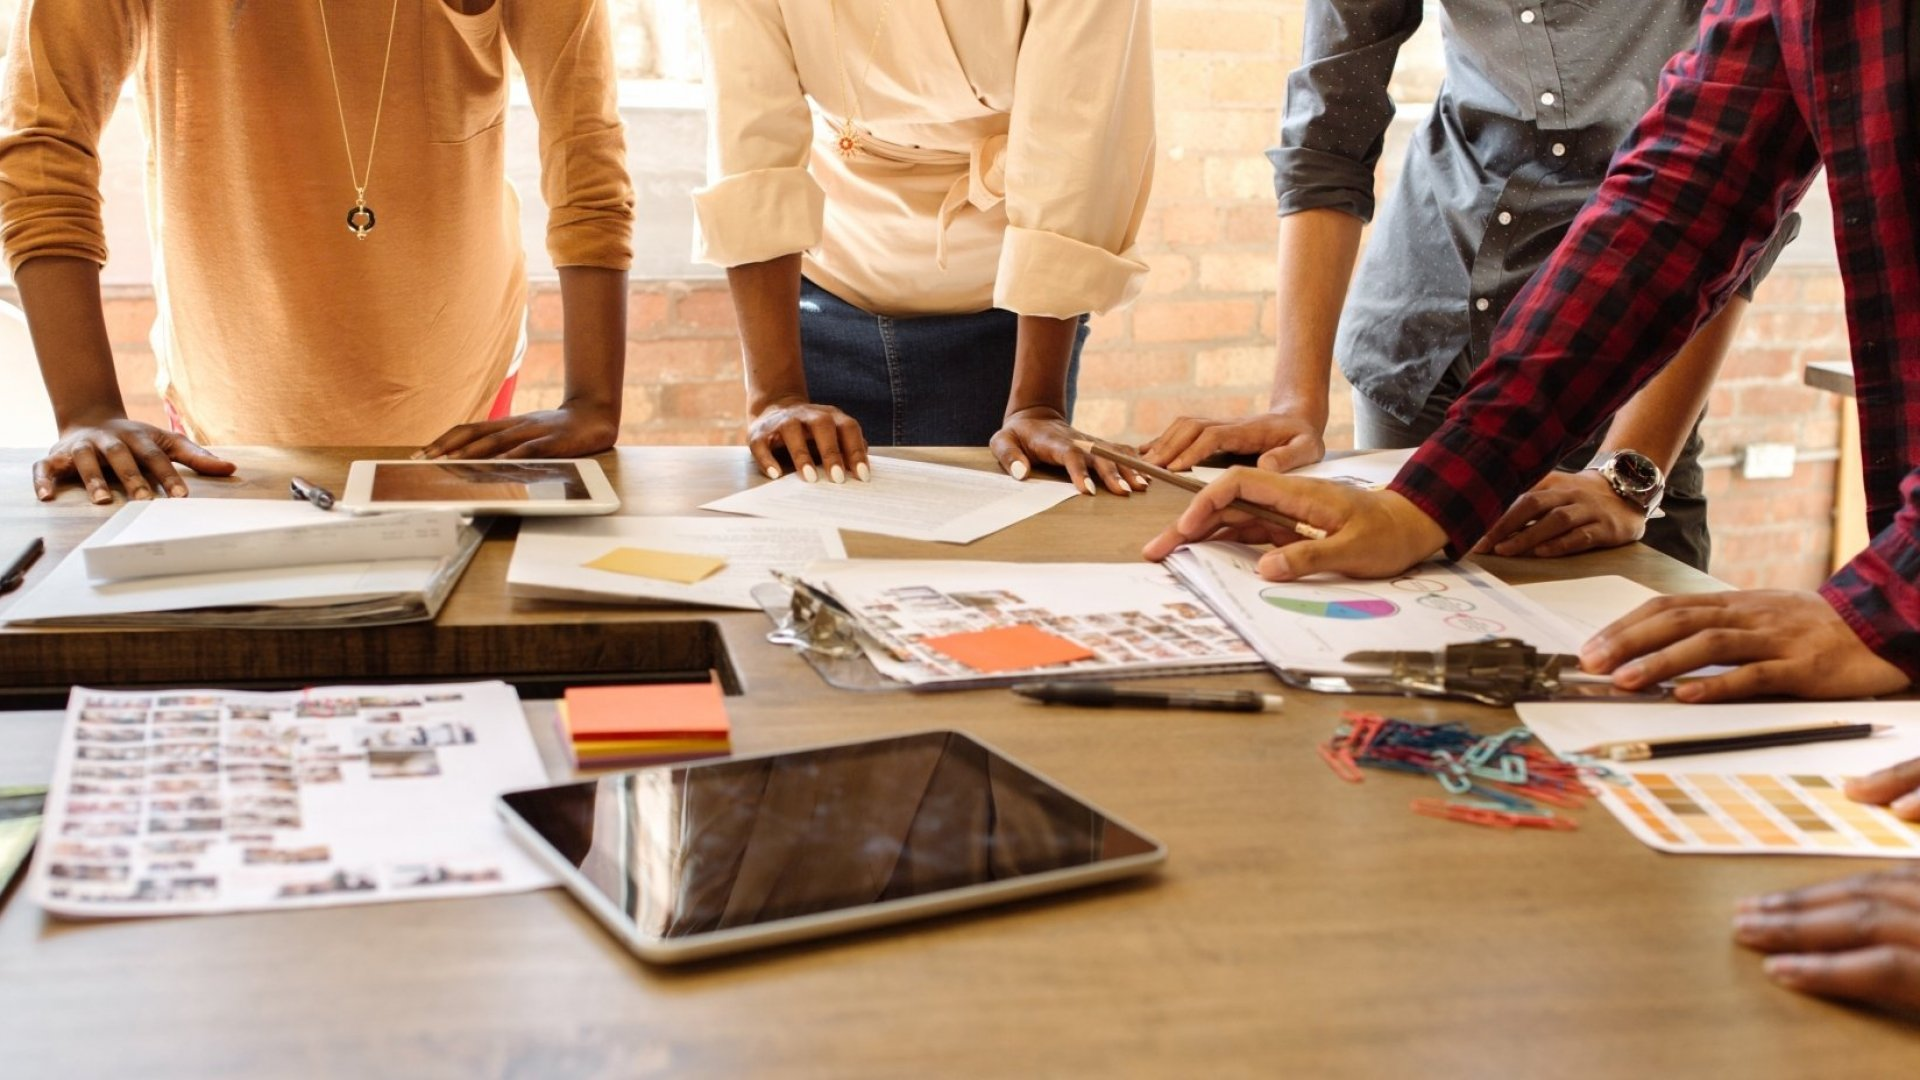 5 Habits That Change Managers Into Great Leaders